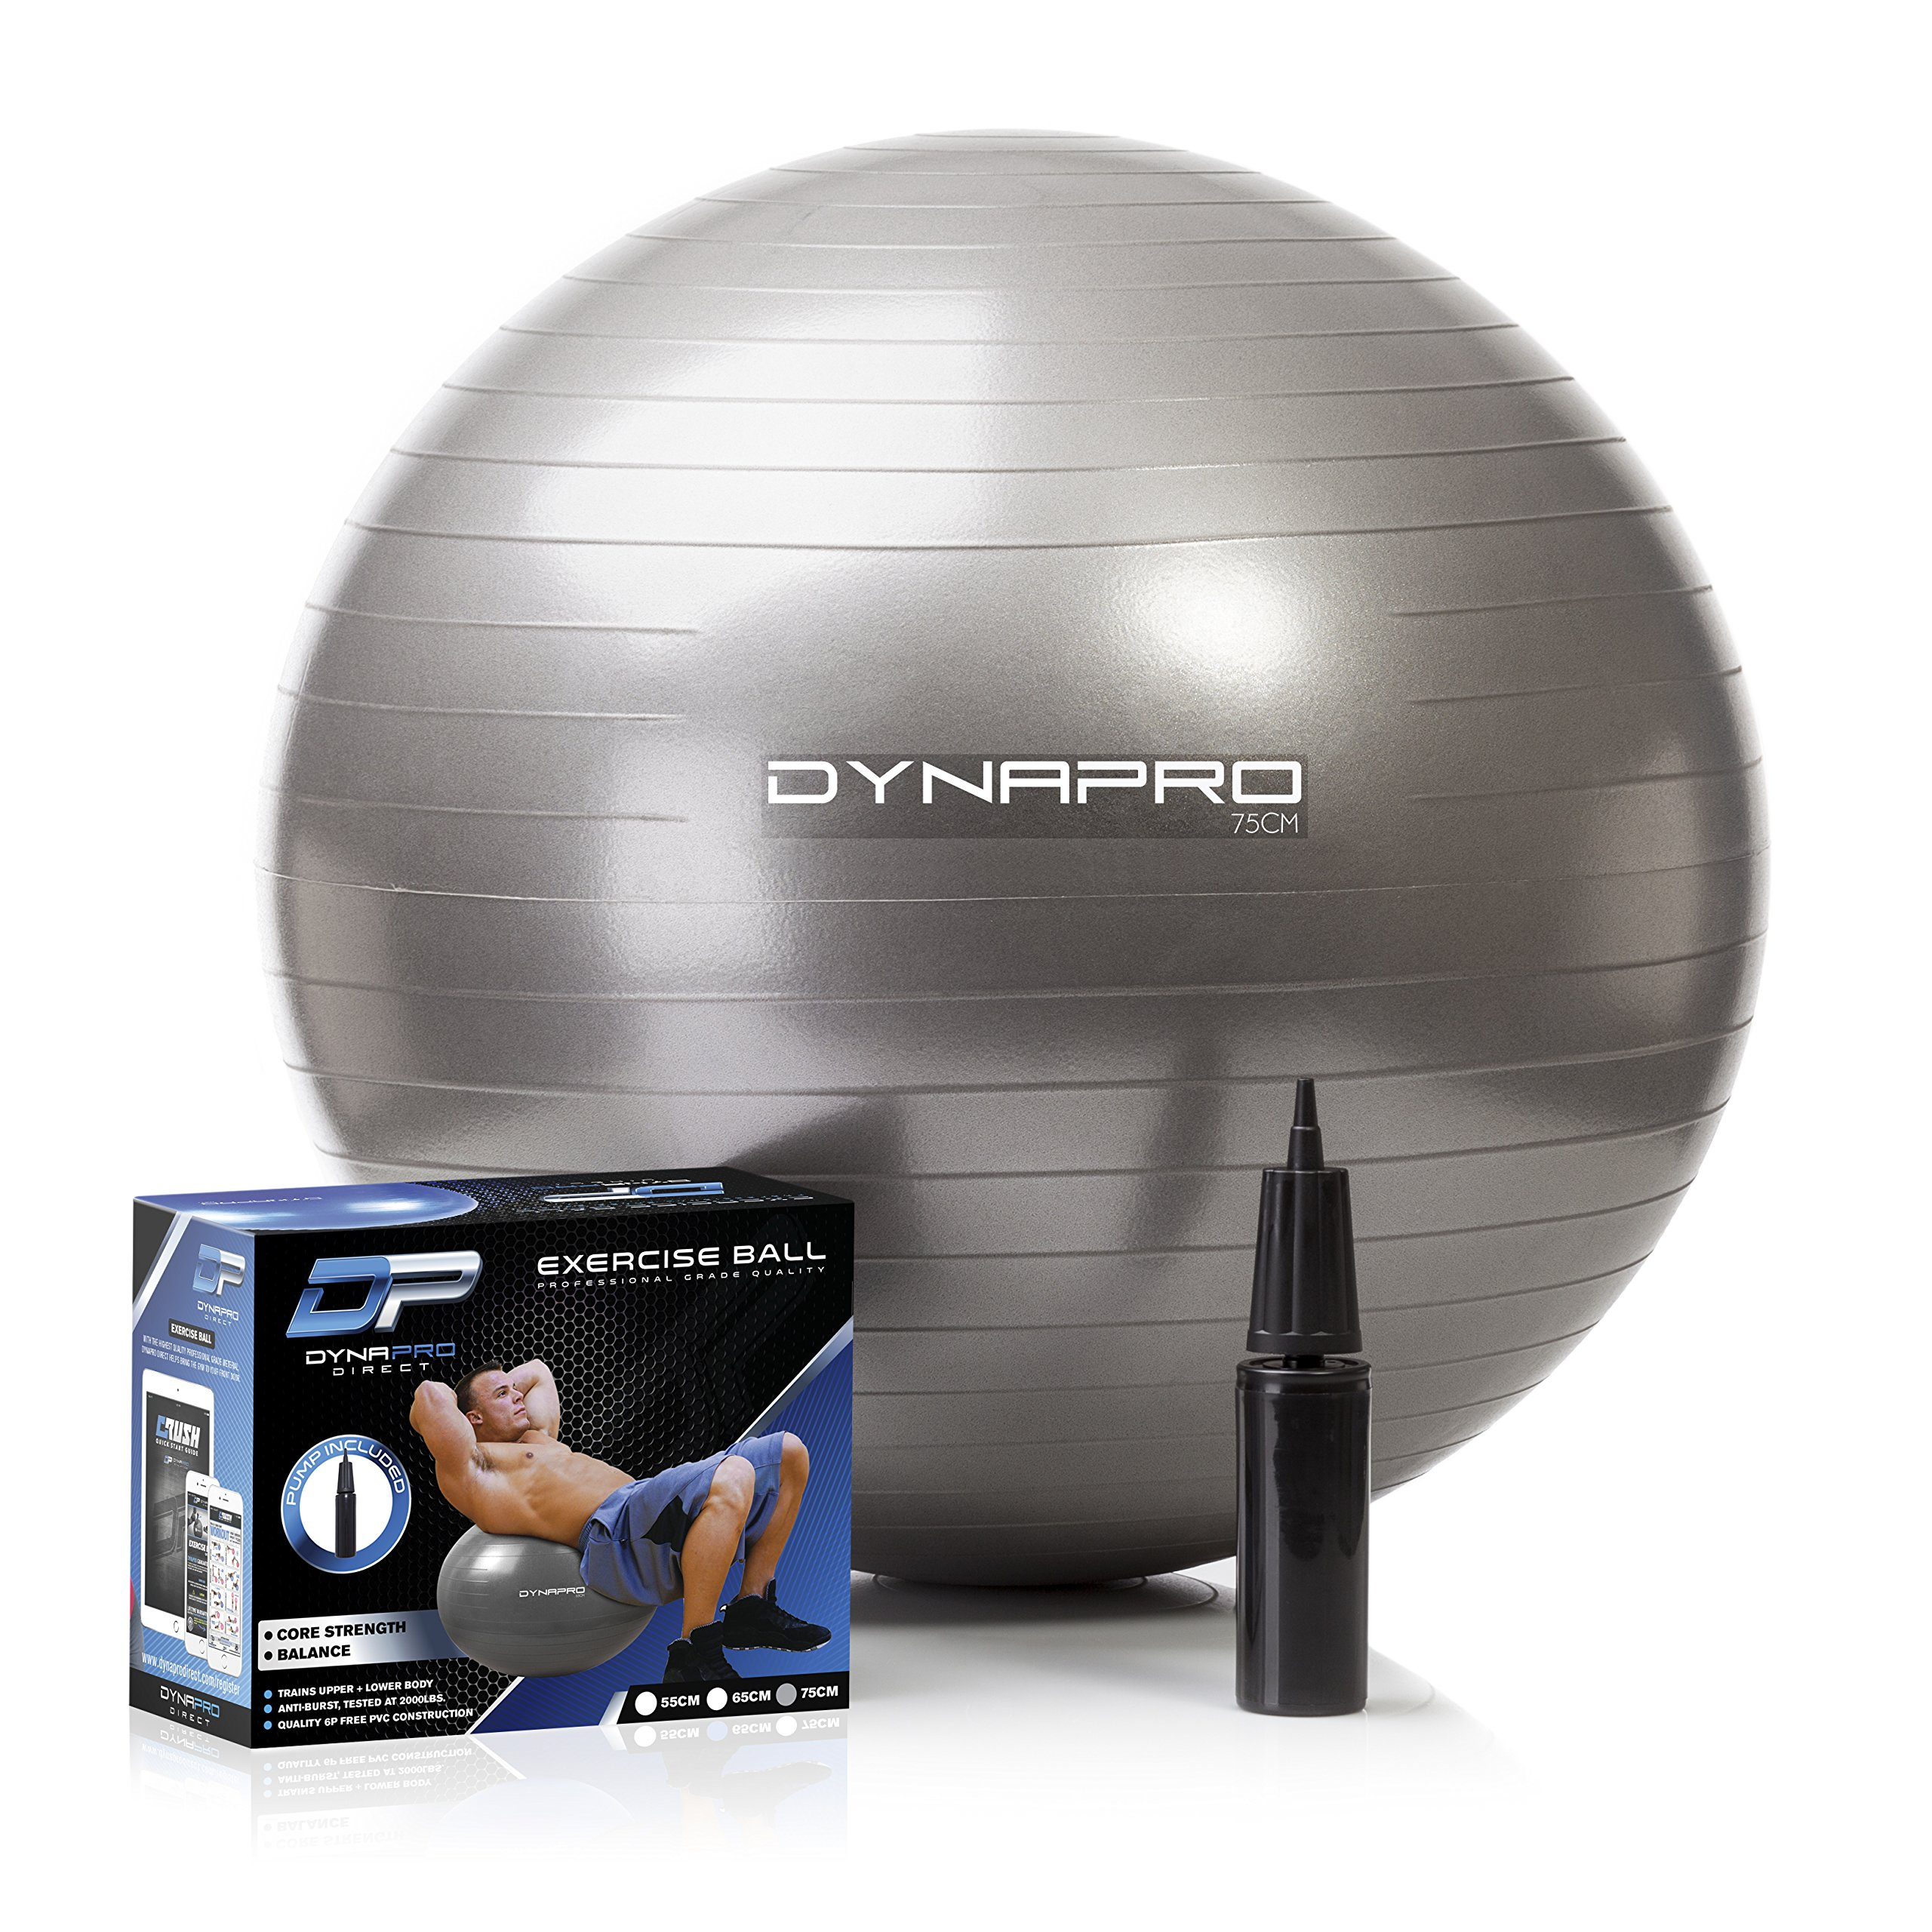 DYNAPRO Exercise Ball - 2,000 lbs Stability Ball - Professional Grade – Anti Burst Exercise Equipment for Home, Balance, Gym, Core Strength, Yoga, Fitness, Desk Chairs (Silver, 75 Centimeters) by DYNAPRO (Image #2)